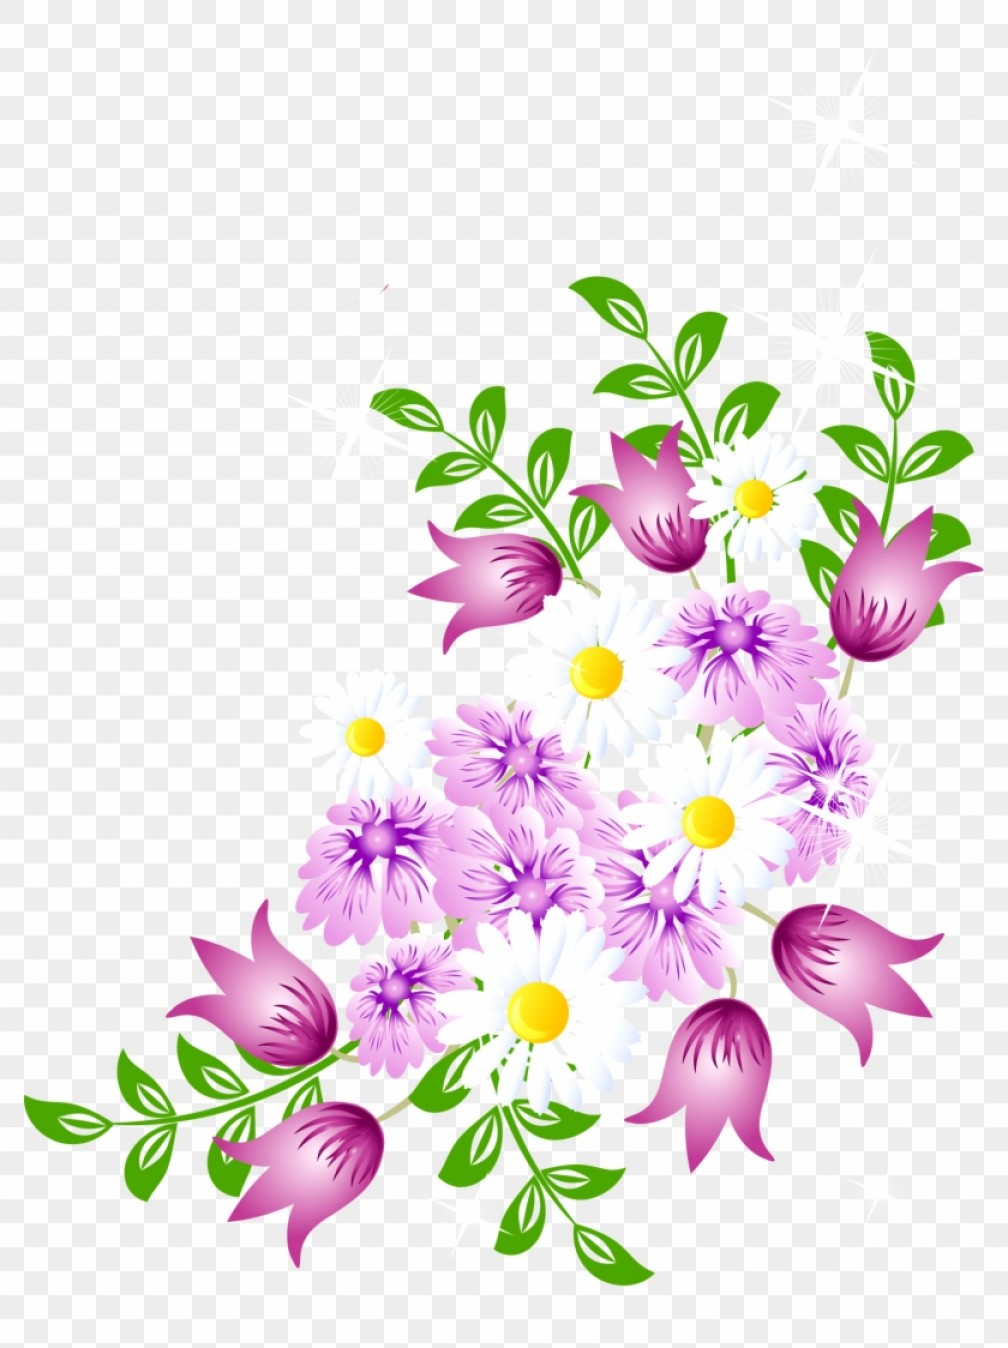 Migkbbihwatercolor Flower Spring Flowers Vector Png.